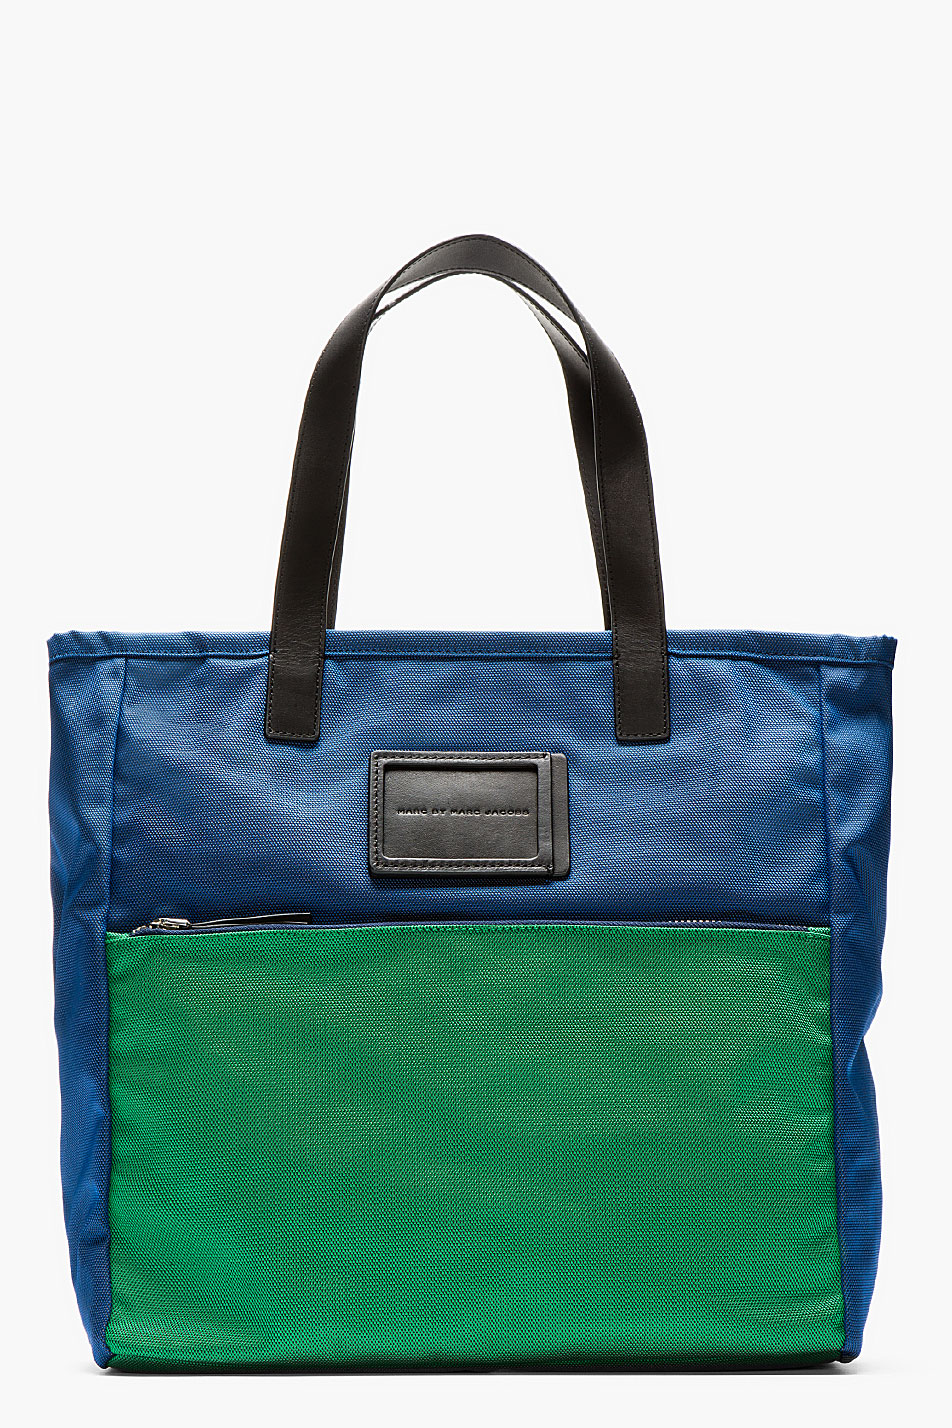 marc by marc jacobs blue and green nylon take me tote